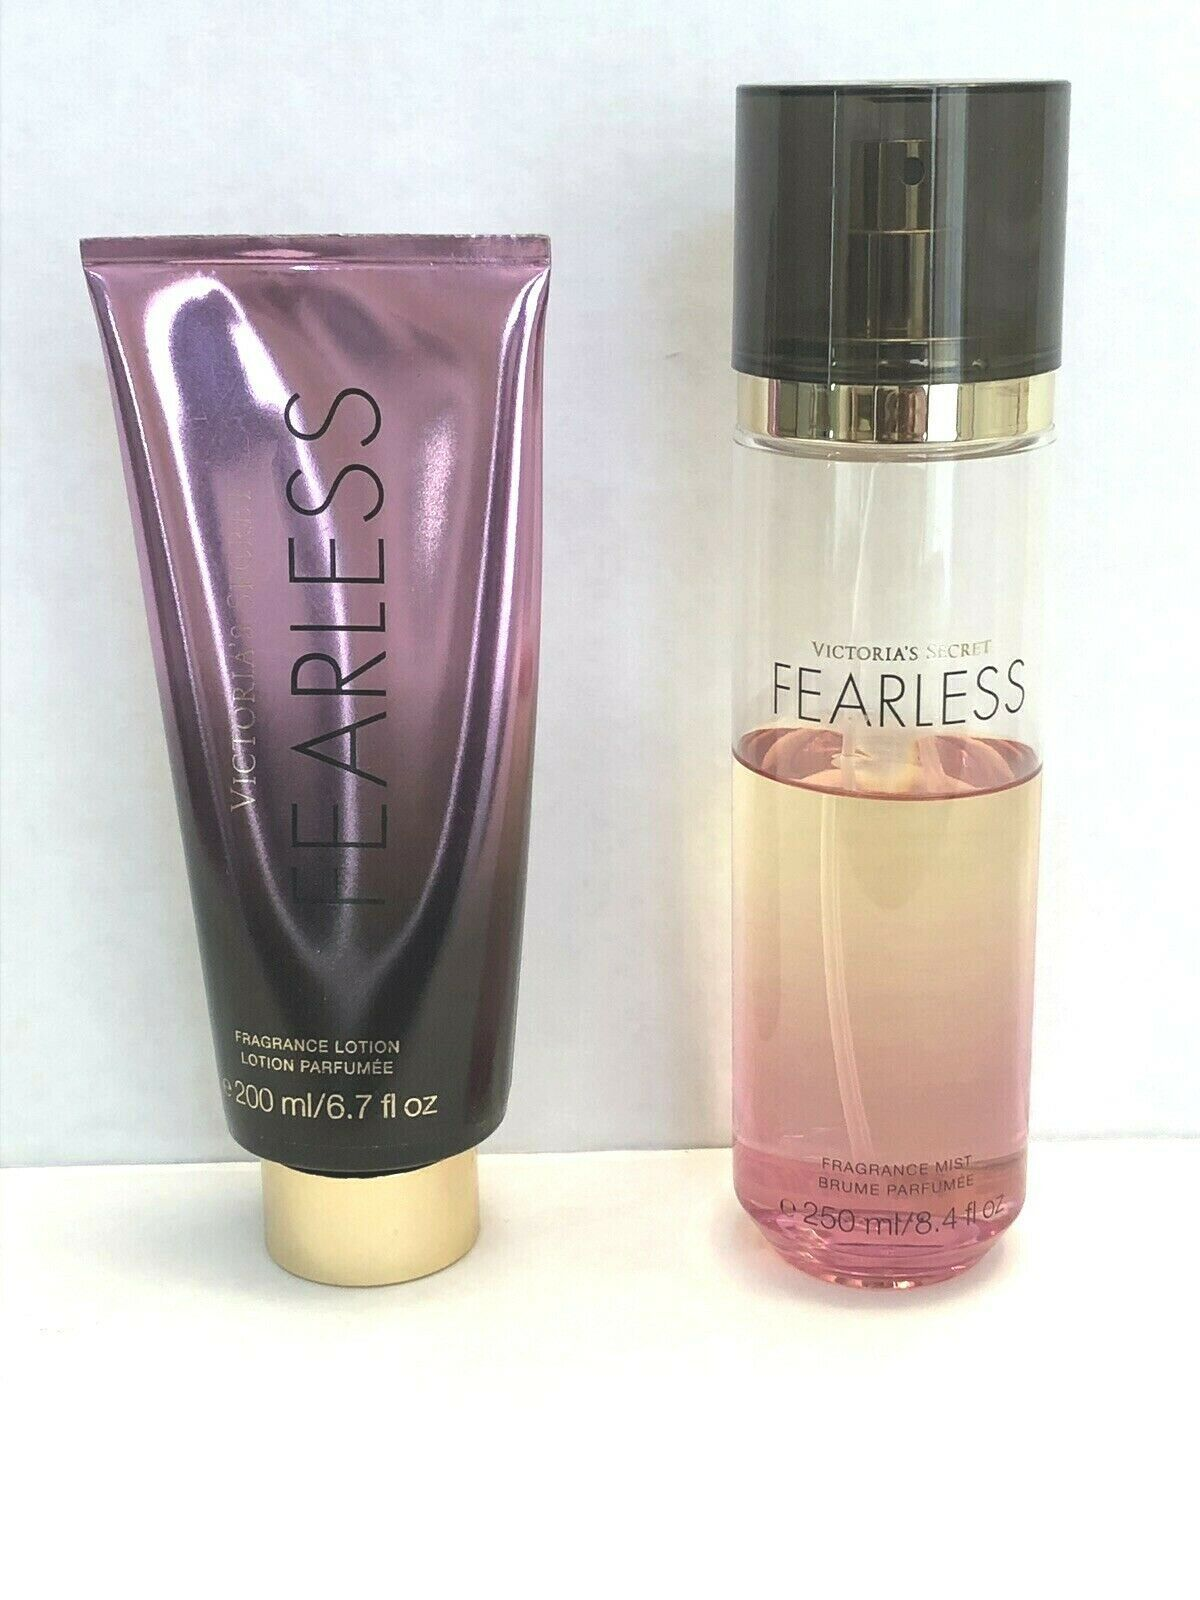 Primary image for Victorias Secret Fearless Fragrance Mist and Lotion